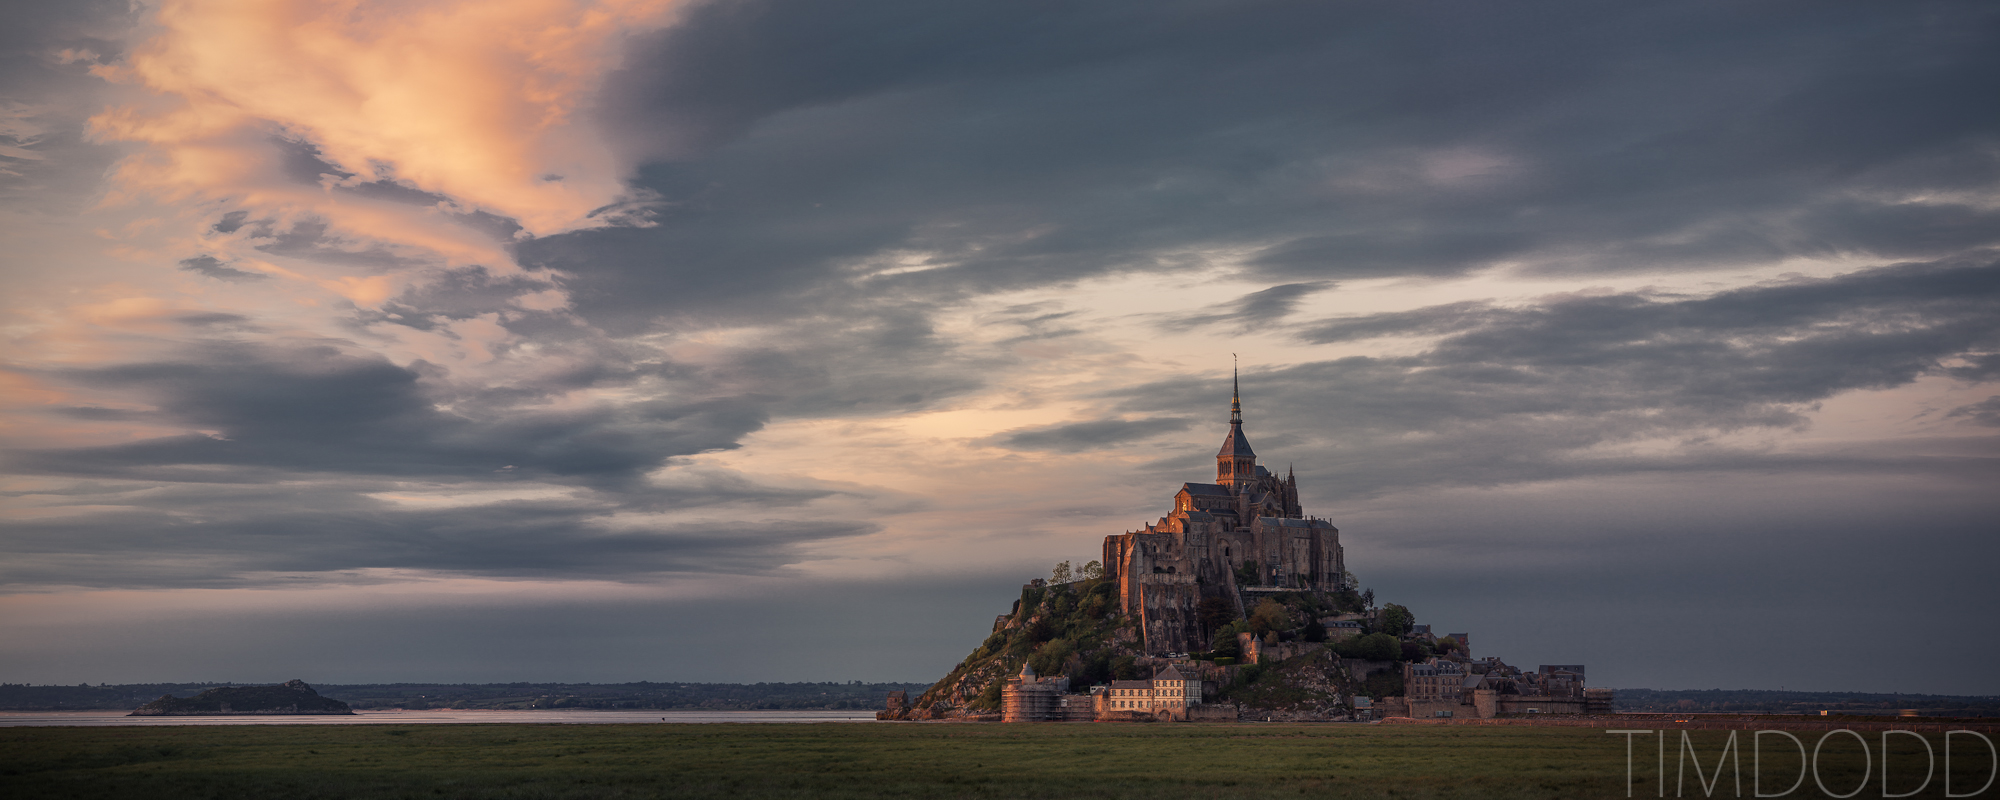 Mont Saint Michel, France, Tim Dodd Photography, Cedar Falls, Iowa 2 Travel to Europe for cheap, top 10 things to see in Europe, must see, photographers guide, photographs, best pictures,